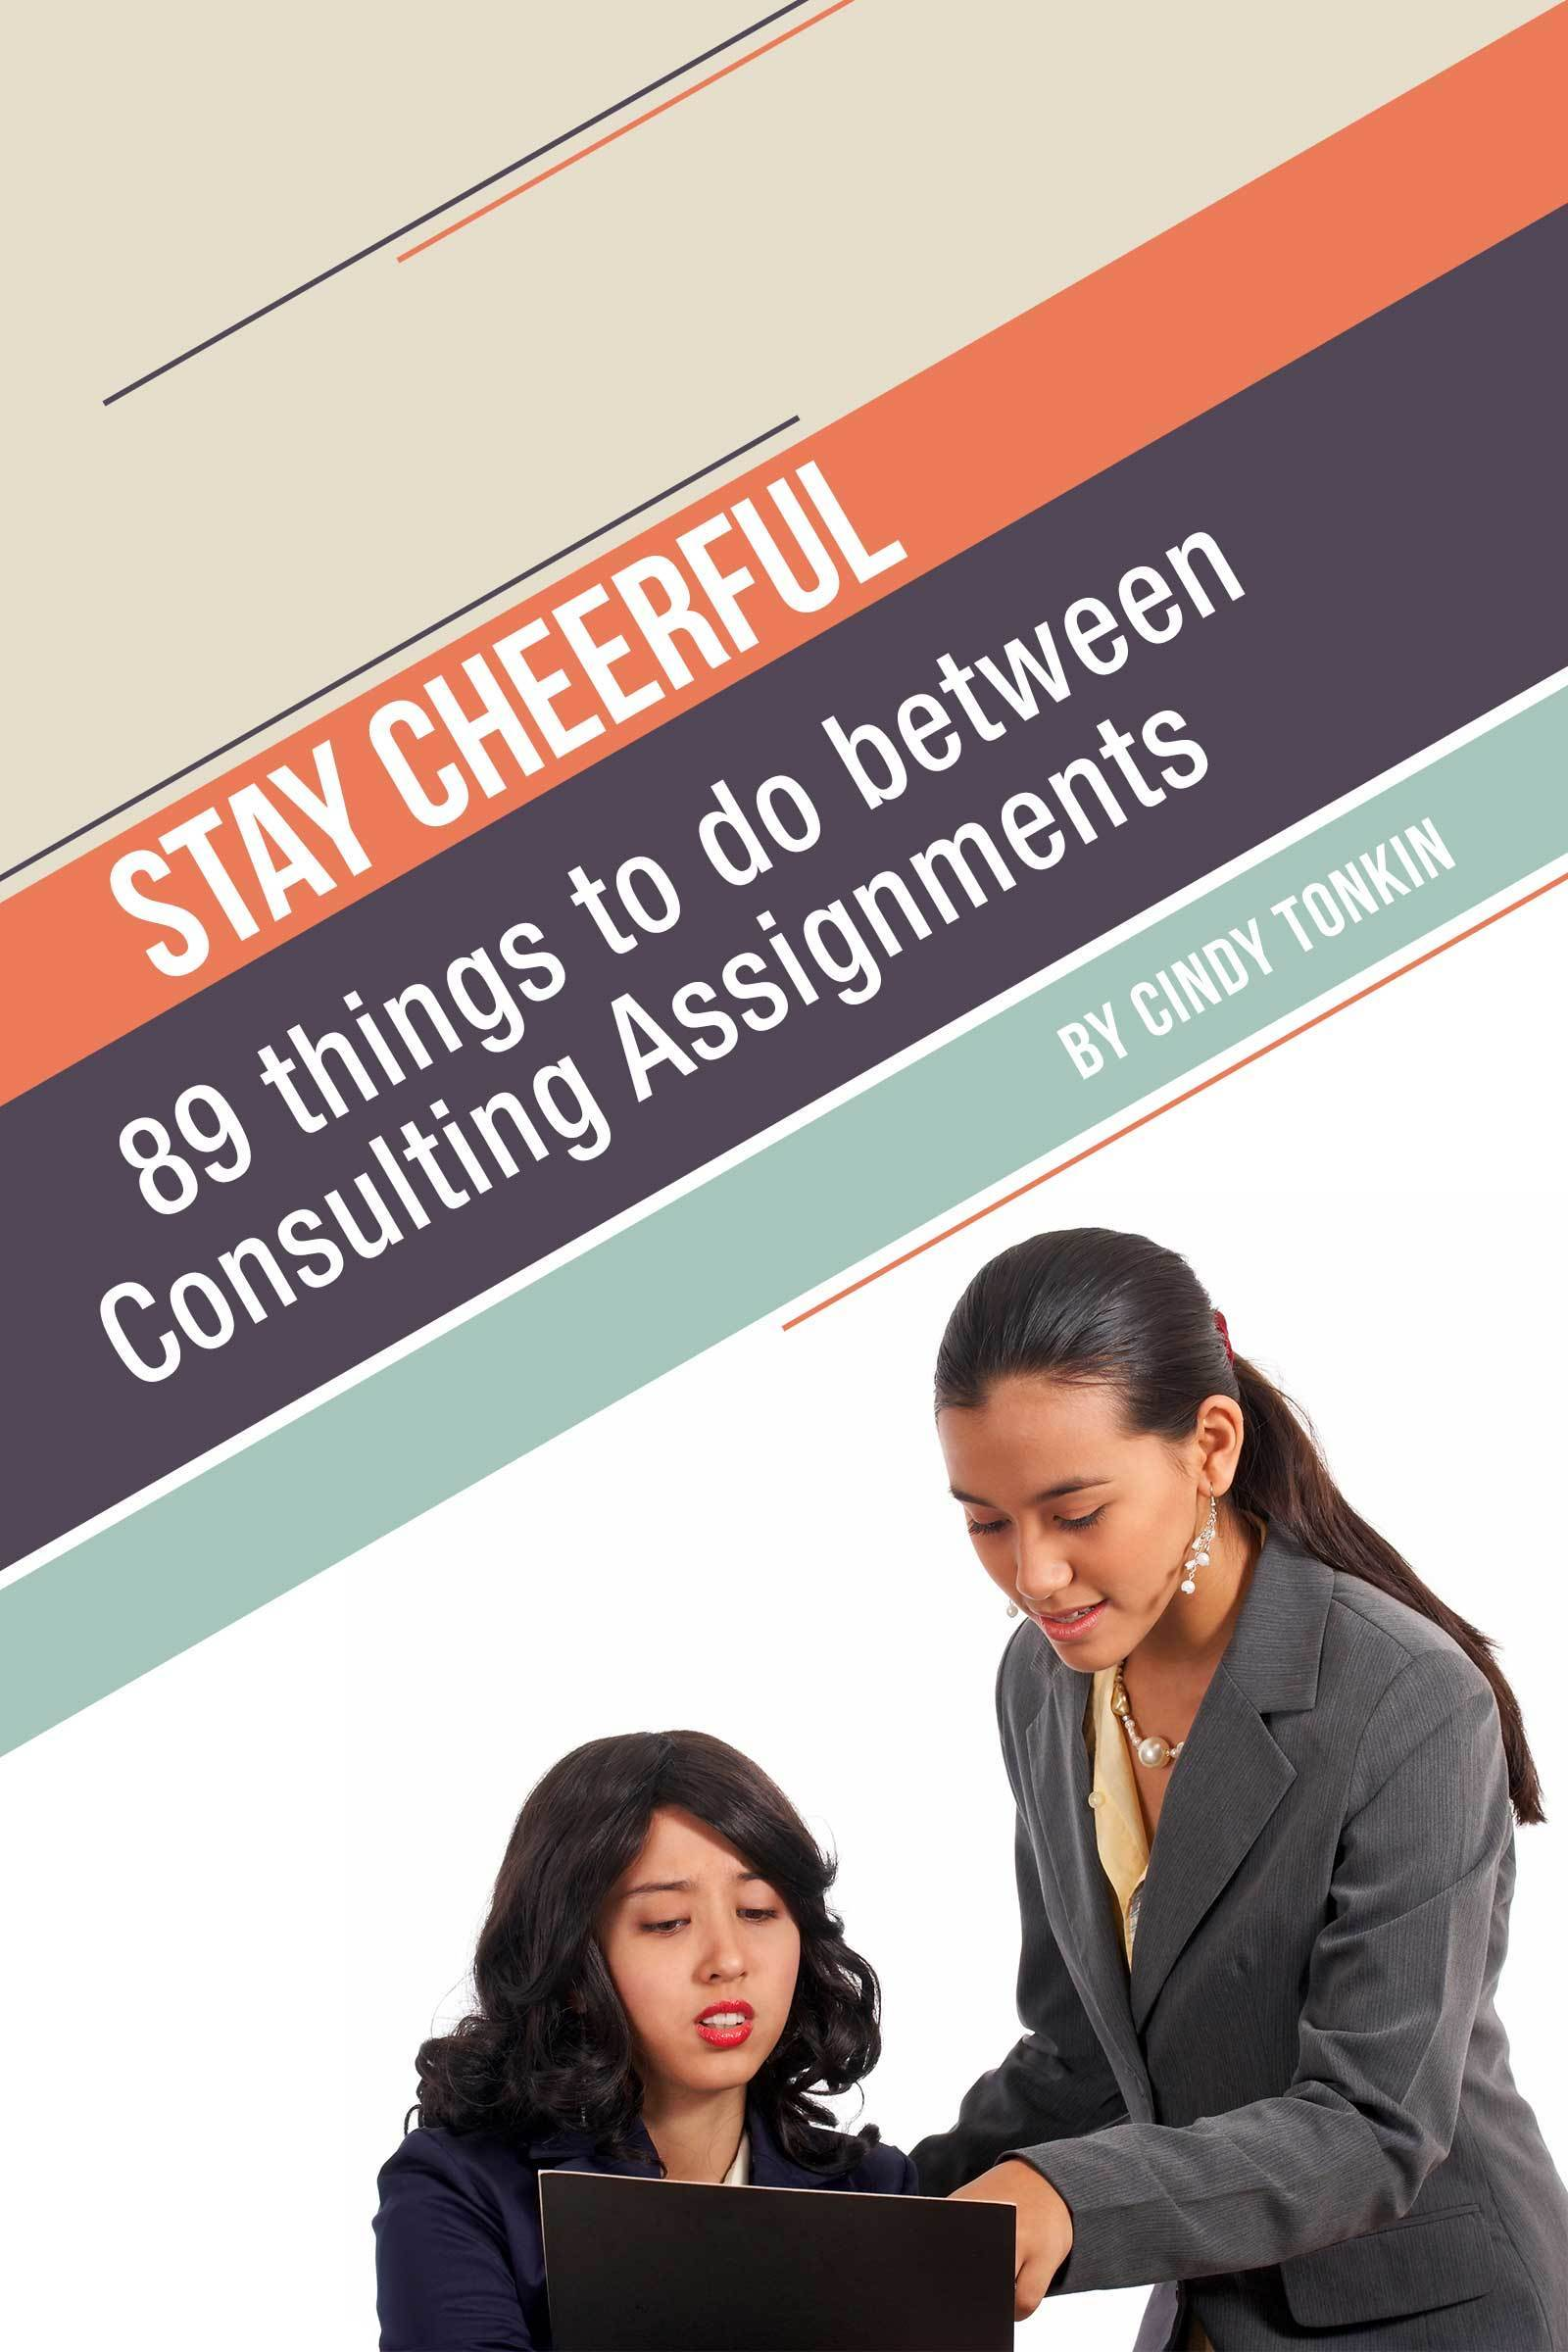 Stay Cheerful!: 89 Things to do Between Consulting Assignments  by  Cindy Tonkin